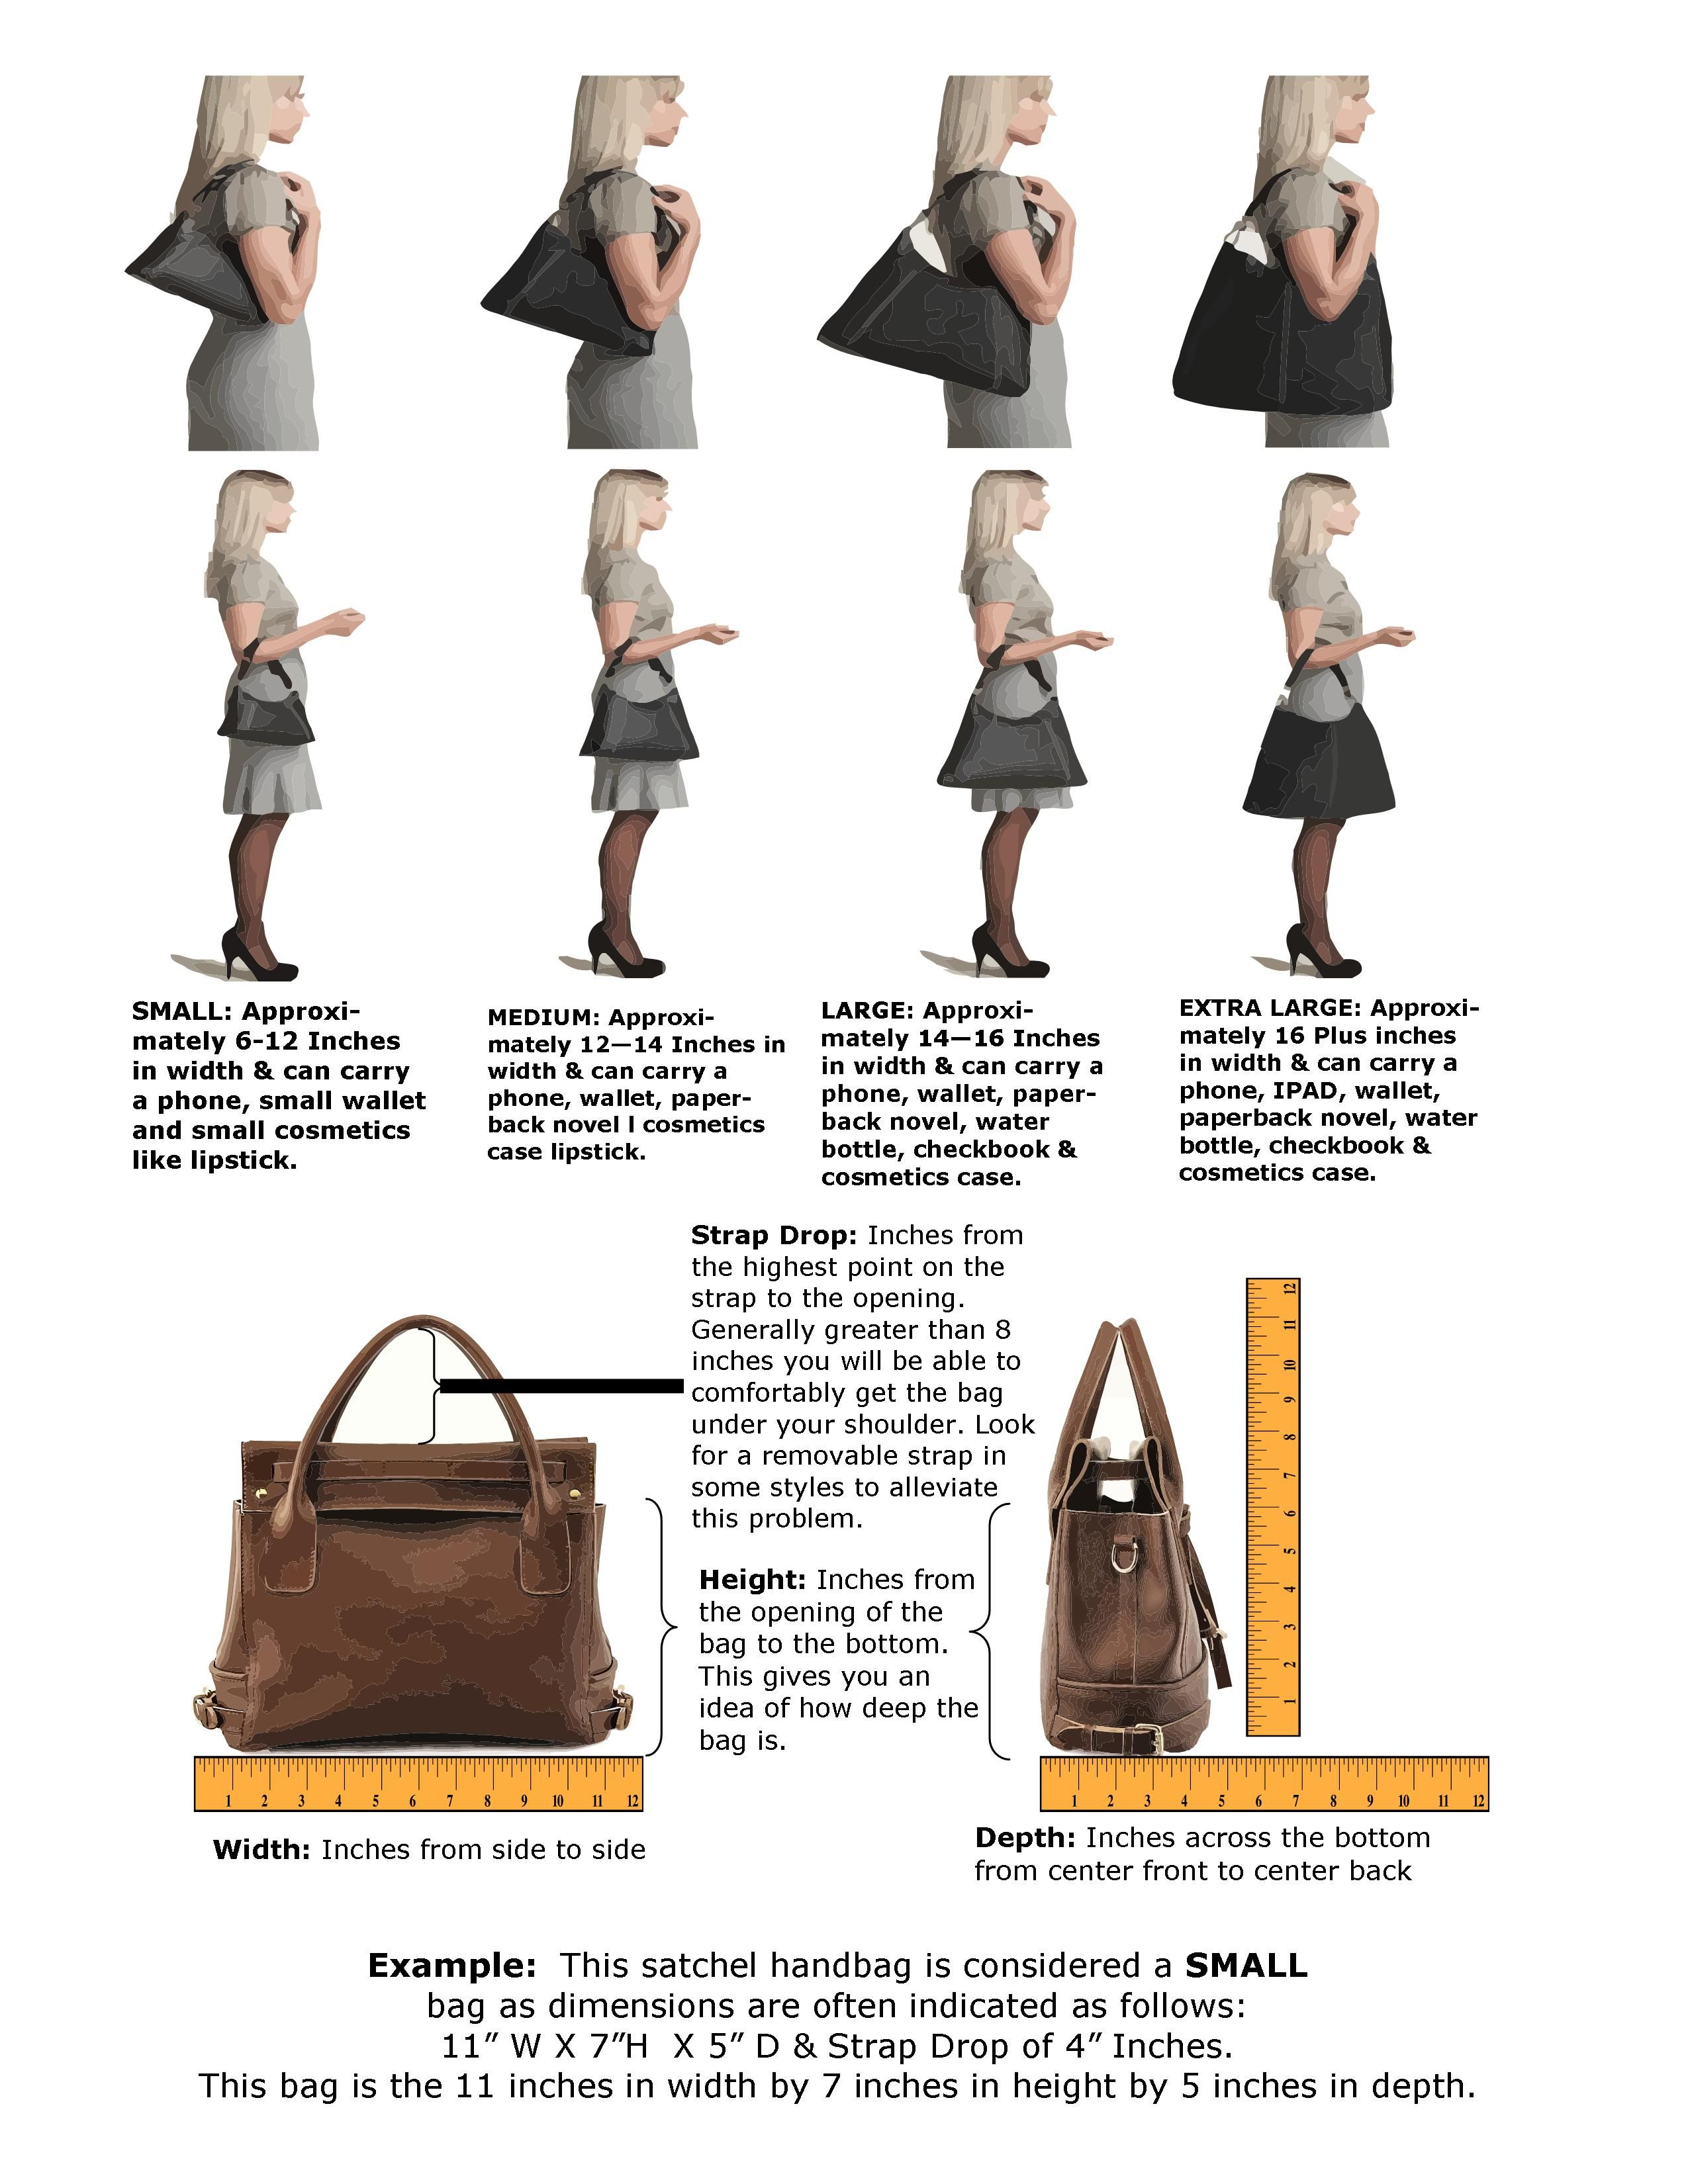 a9f8a048e8 Women s Handbag Sizing Dimension Measurement Guide Chart